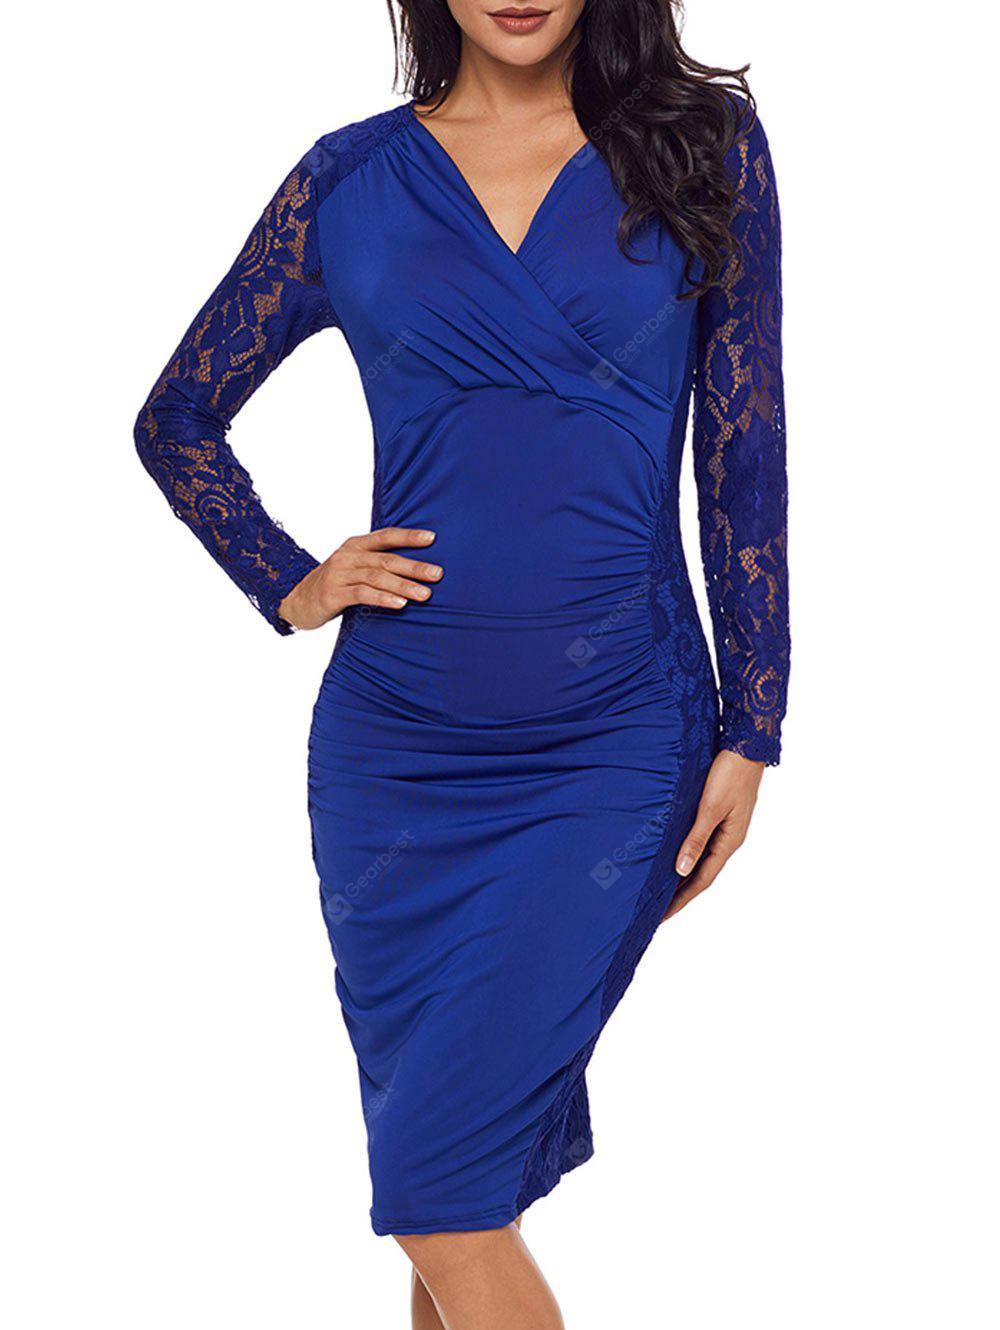 Surplice Neck Lace Panel Ruched Bodycon Dress